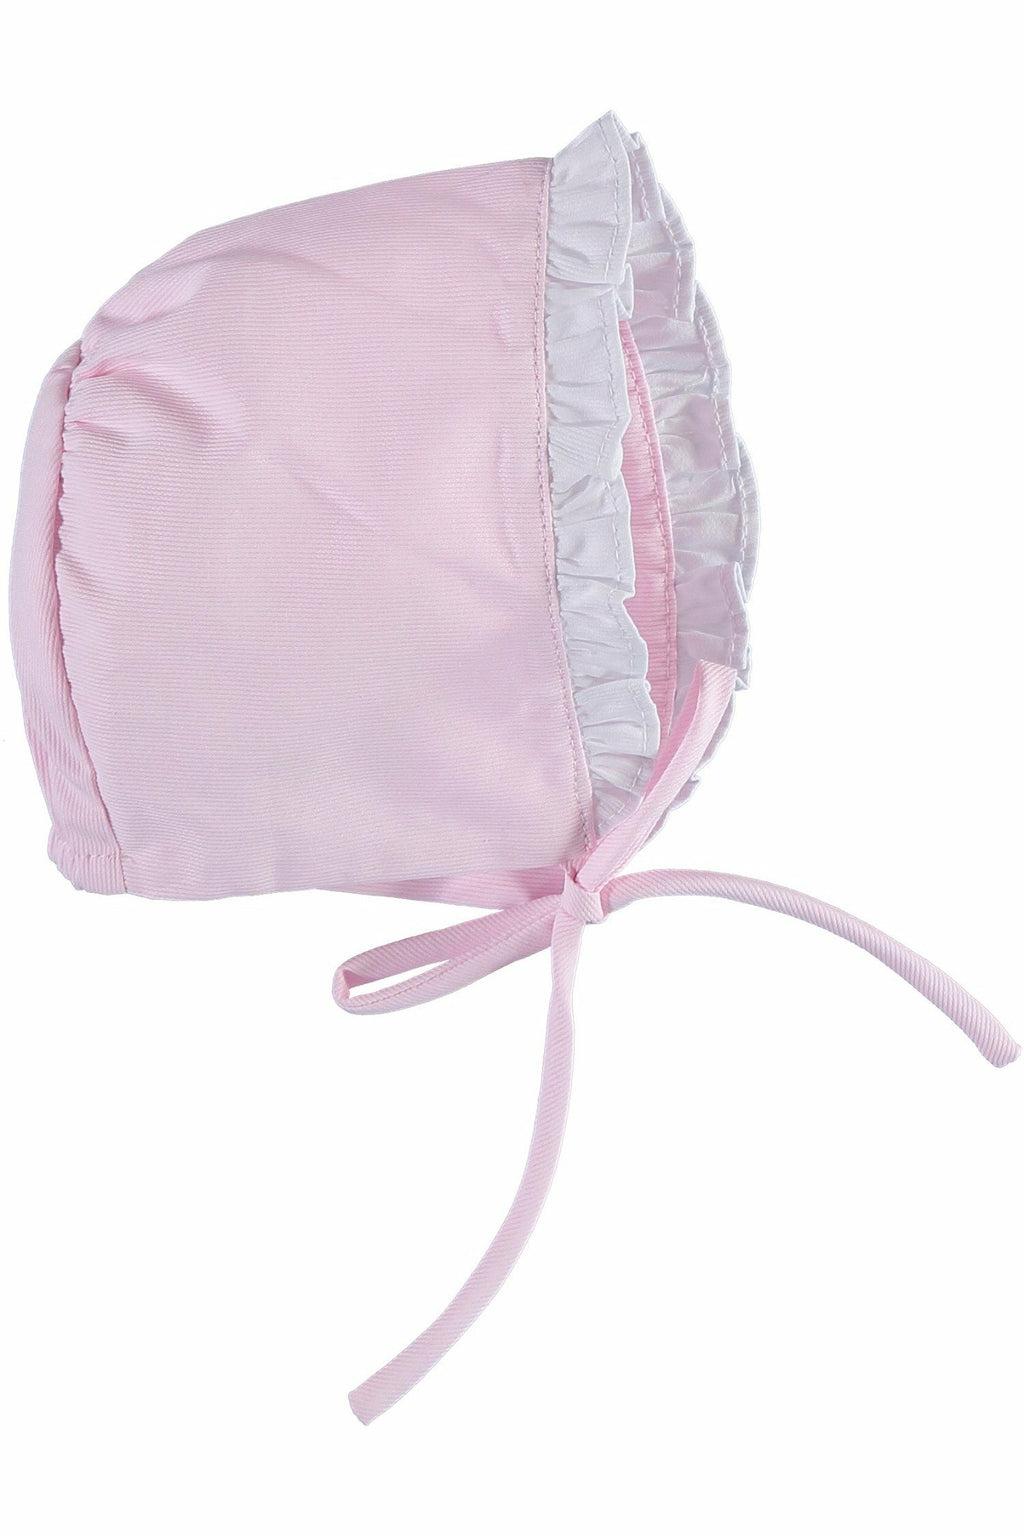 Carriage Boutique Baby Girl Bonnet - Pink